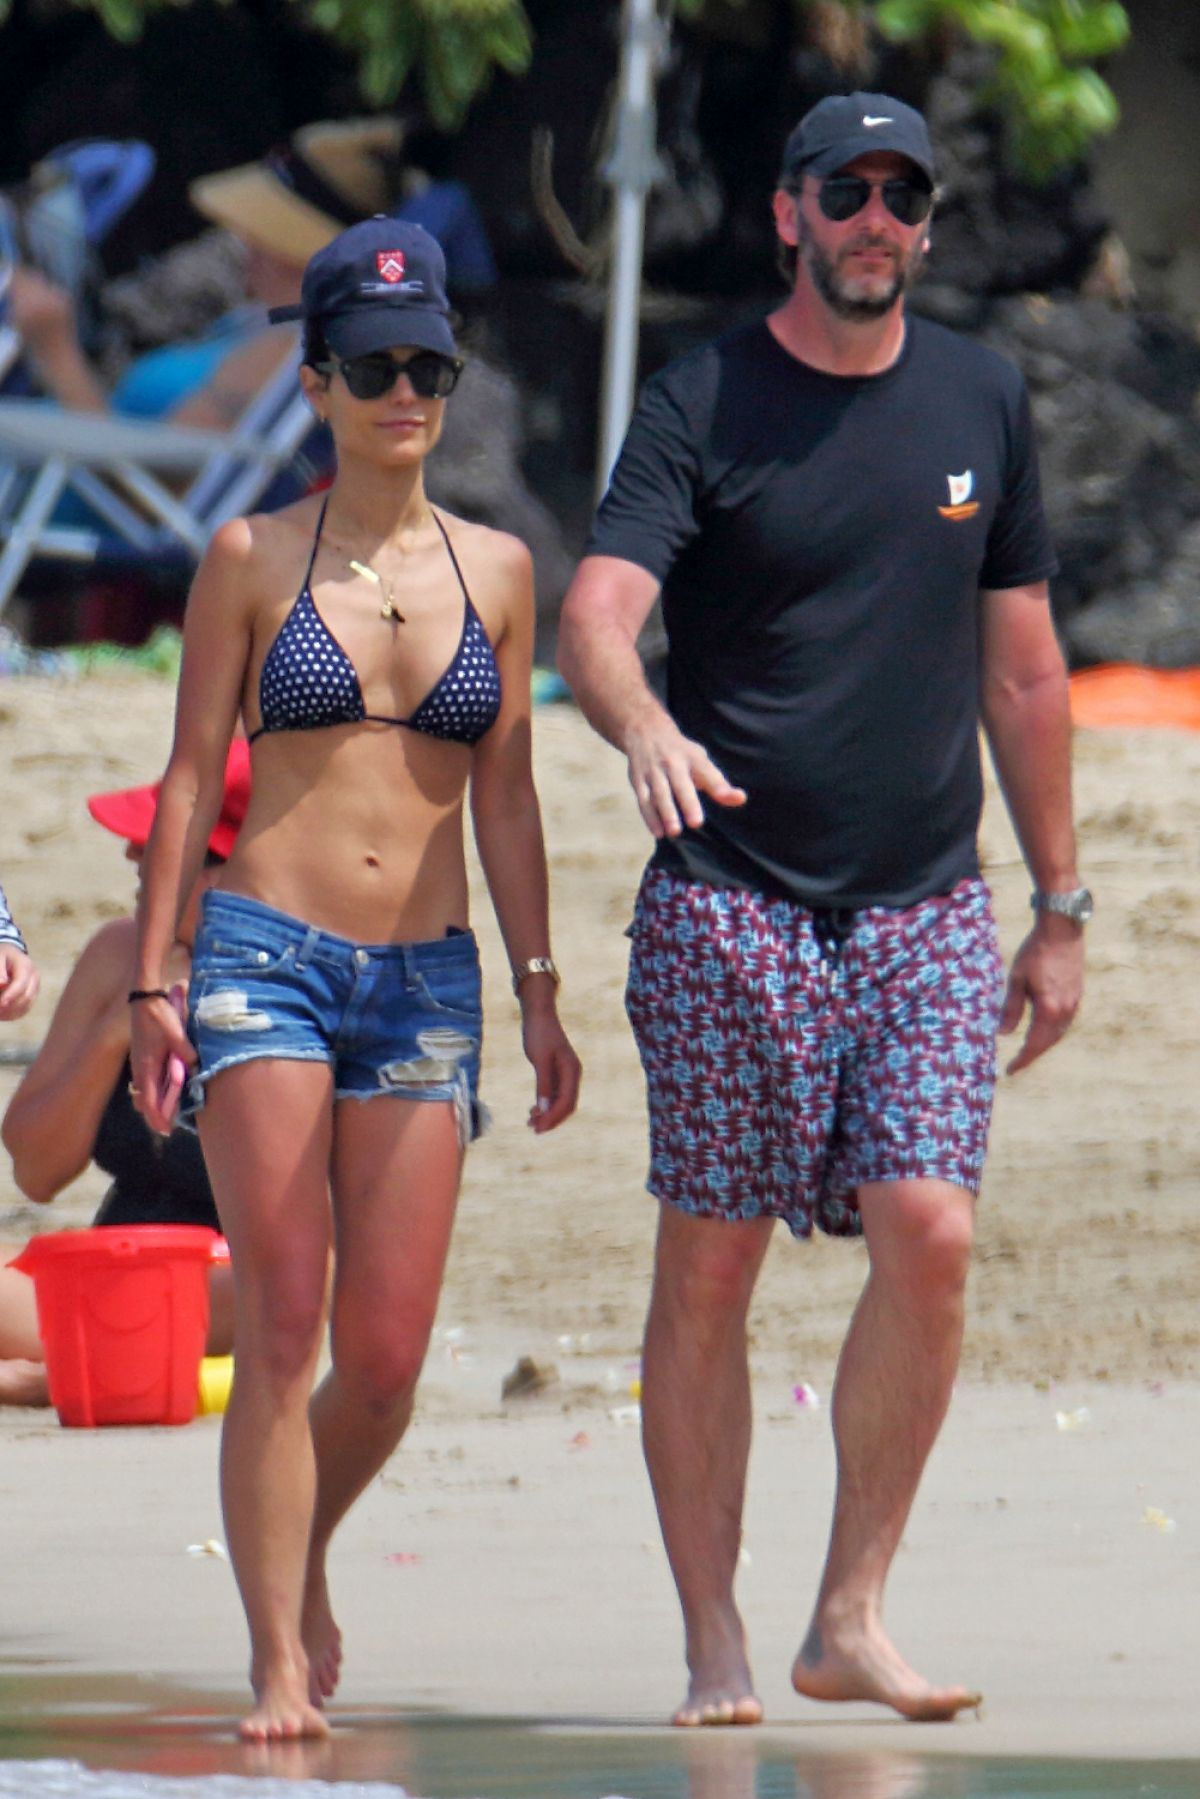 Jordana Brewster Wearing a polka dot bikini on vacation in Hawaii